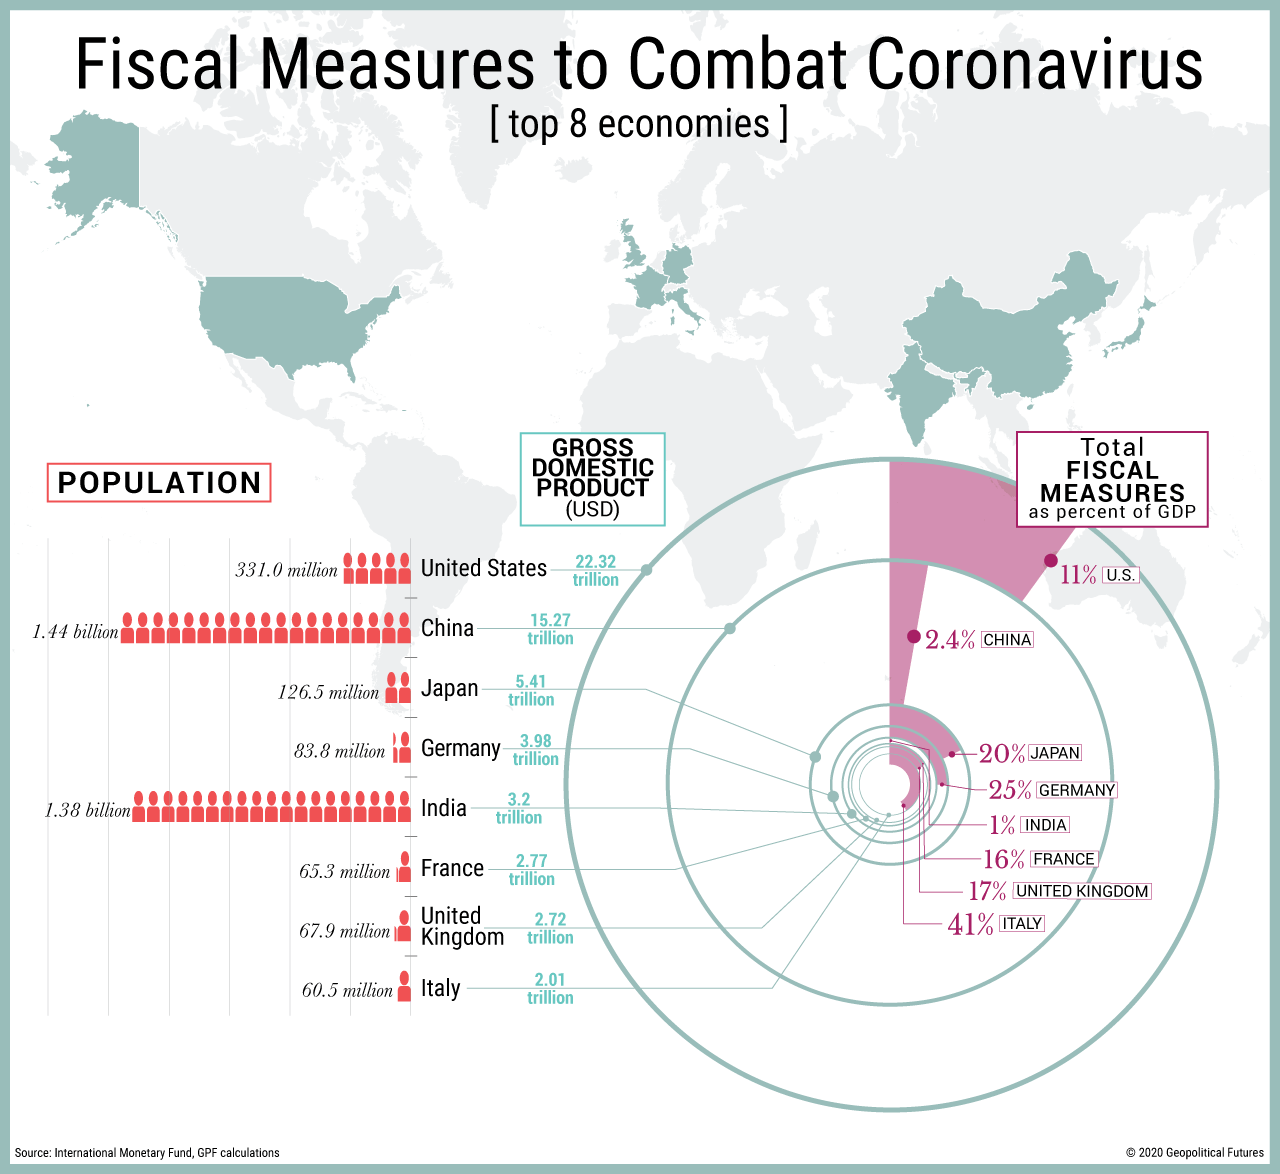 Fiscal Measures to Combat Coronavirus